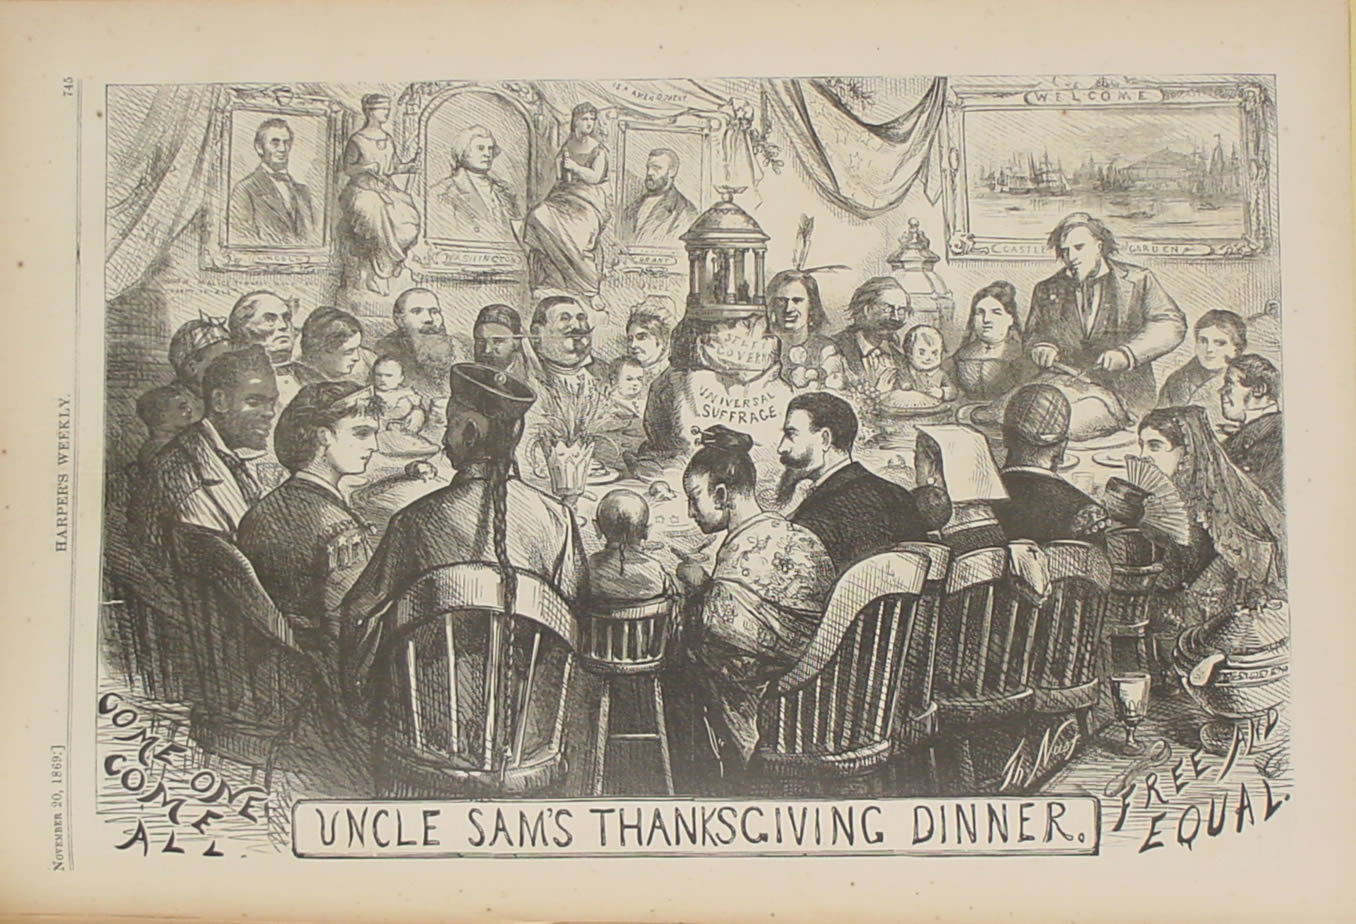 Uncle Sam Thanksgiving